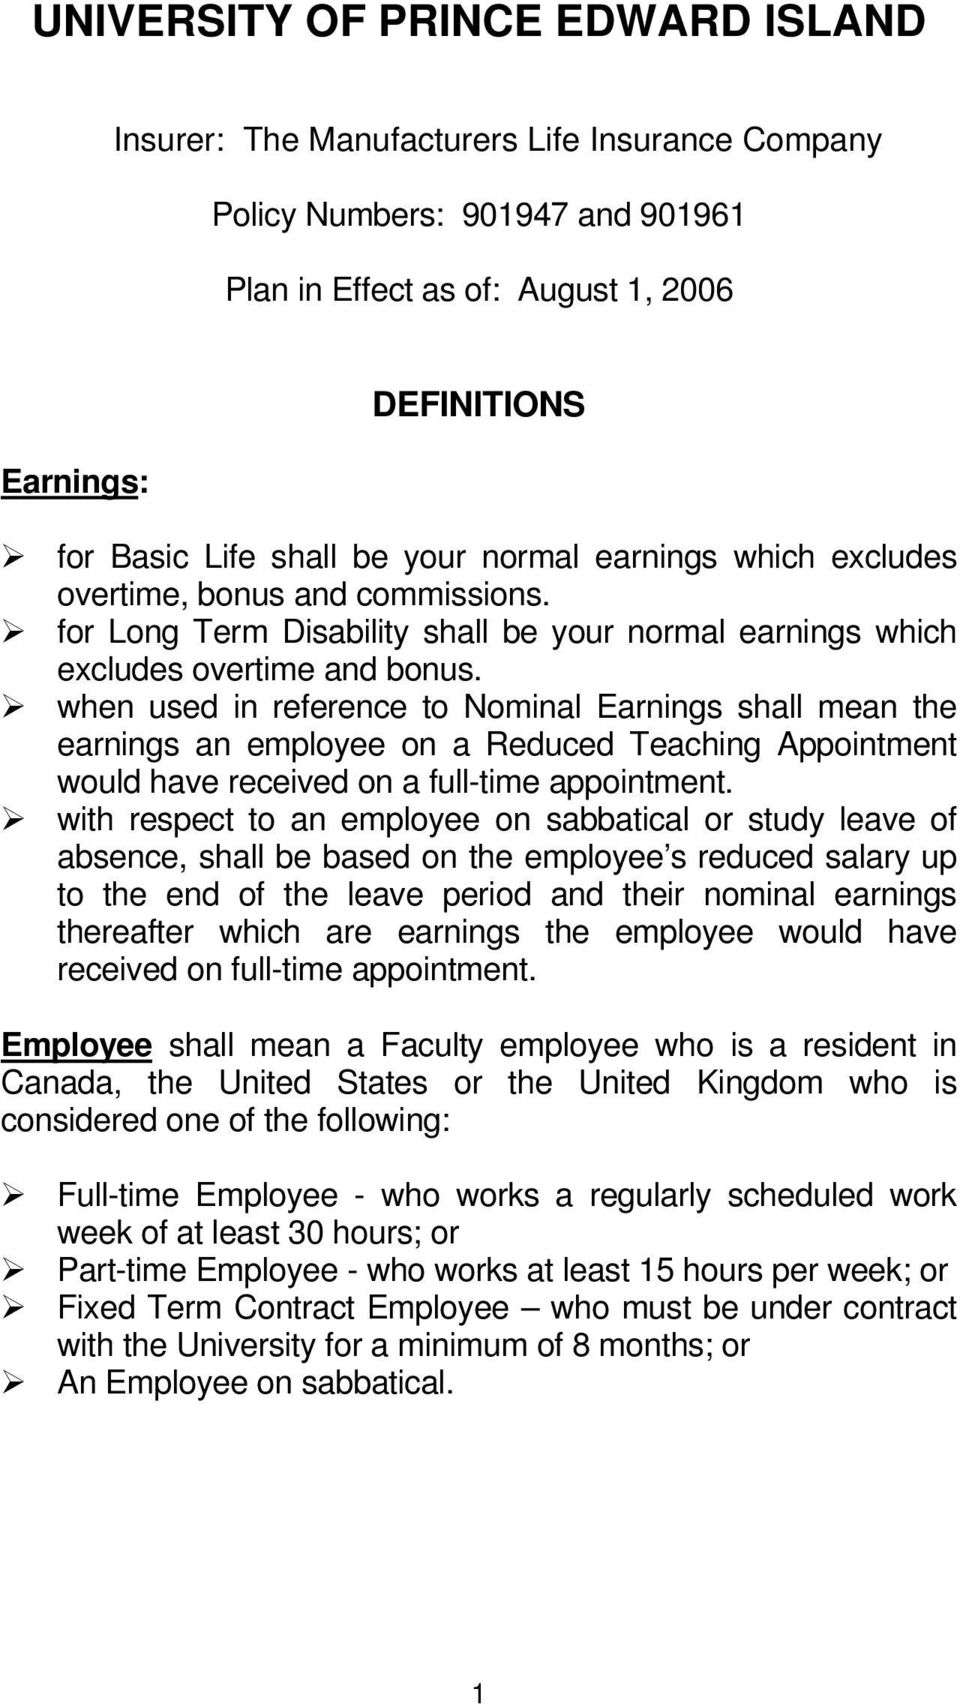 when used in reference to Nominal Earnings shall mean the earnings an employee on a Reduced Teaching Appointment would have received on a full-time appointment.